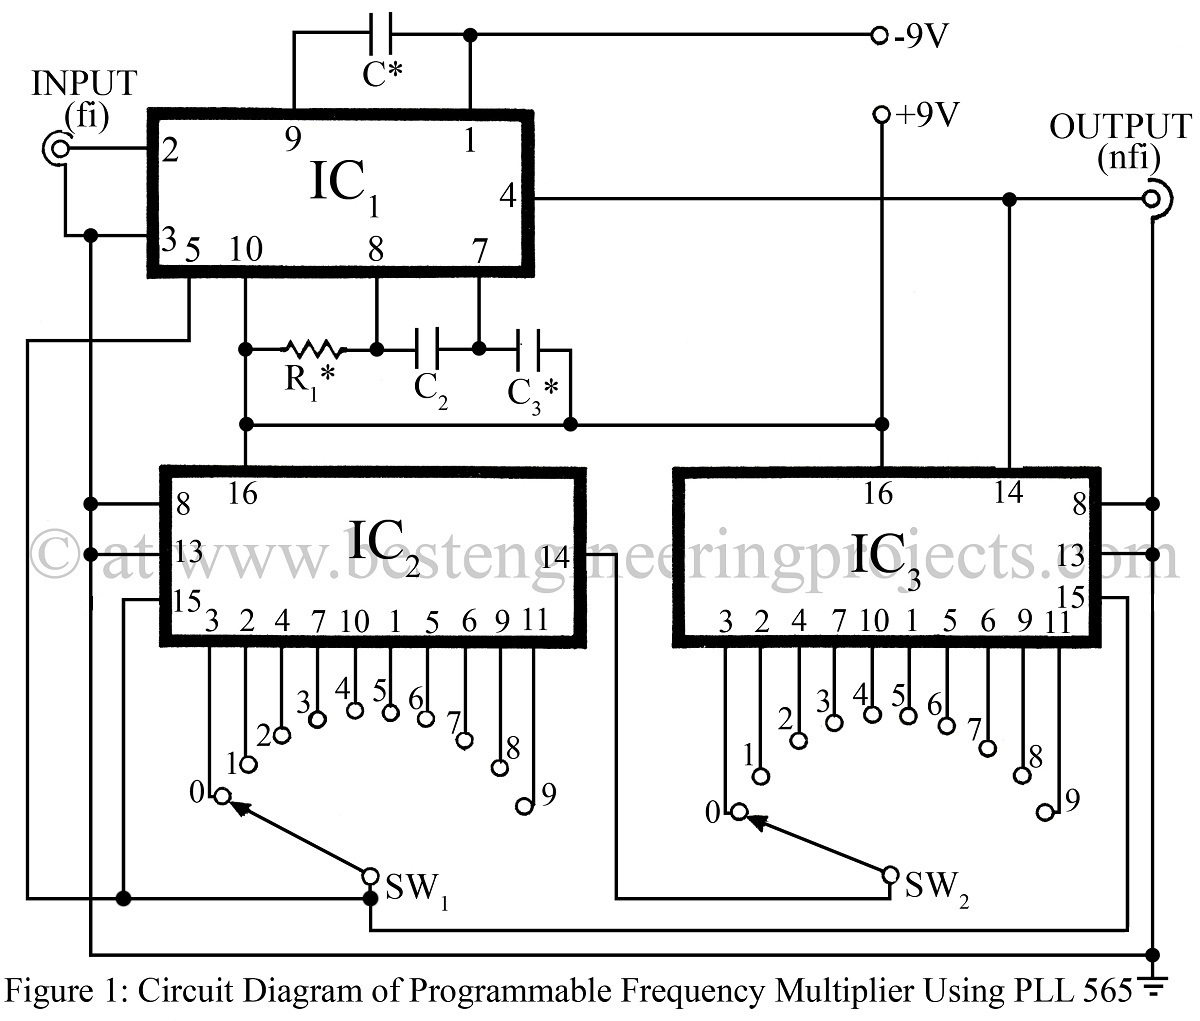 Circuit diagram of up counter on circuit diagram of up counter #2 on LED Diagram on Frequency Counter Circuits Schematics on Digital Down Counter Circuit Number on circuit diagram of up counter #2